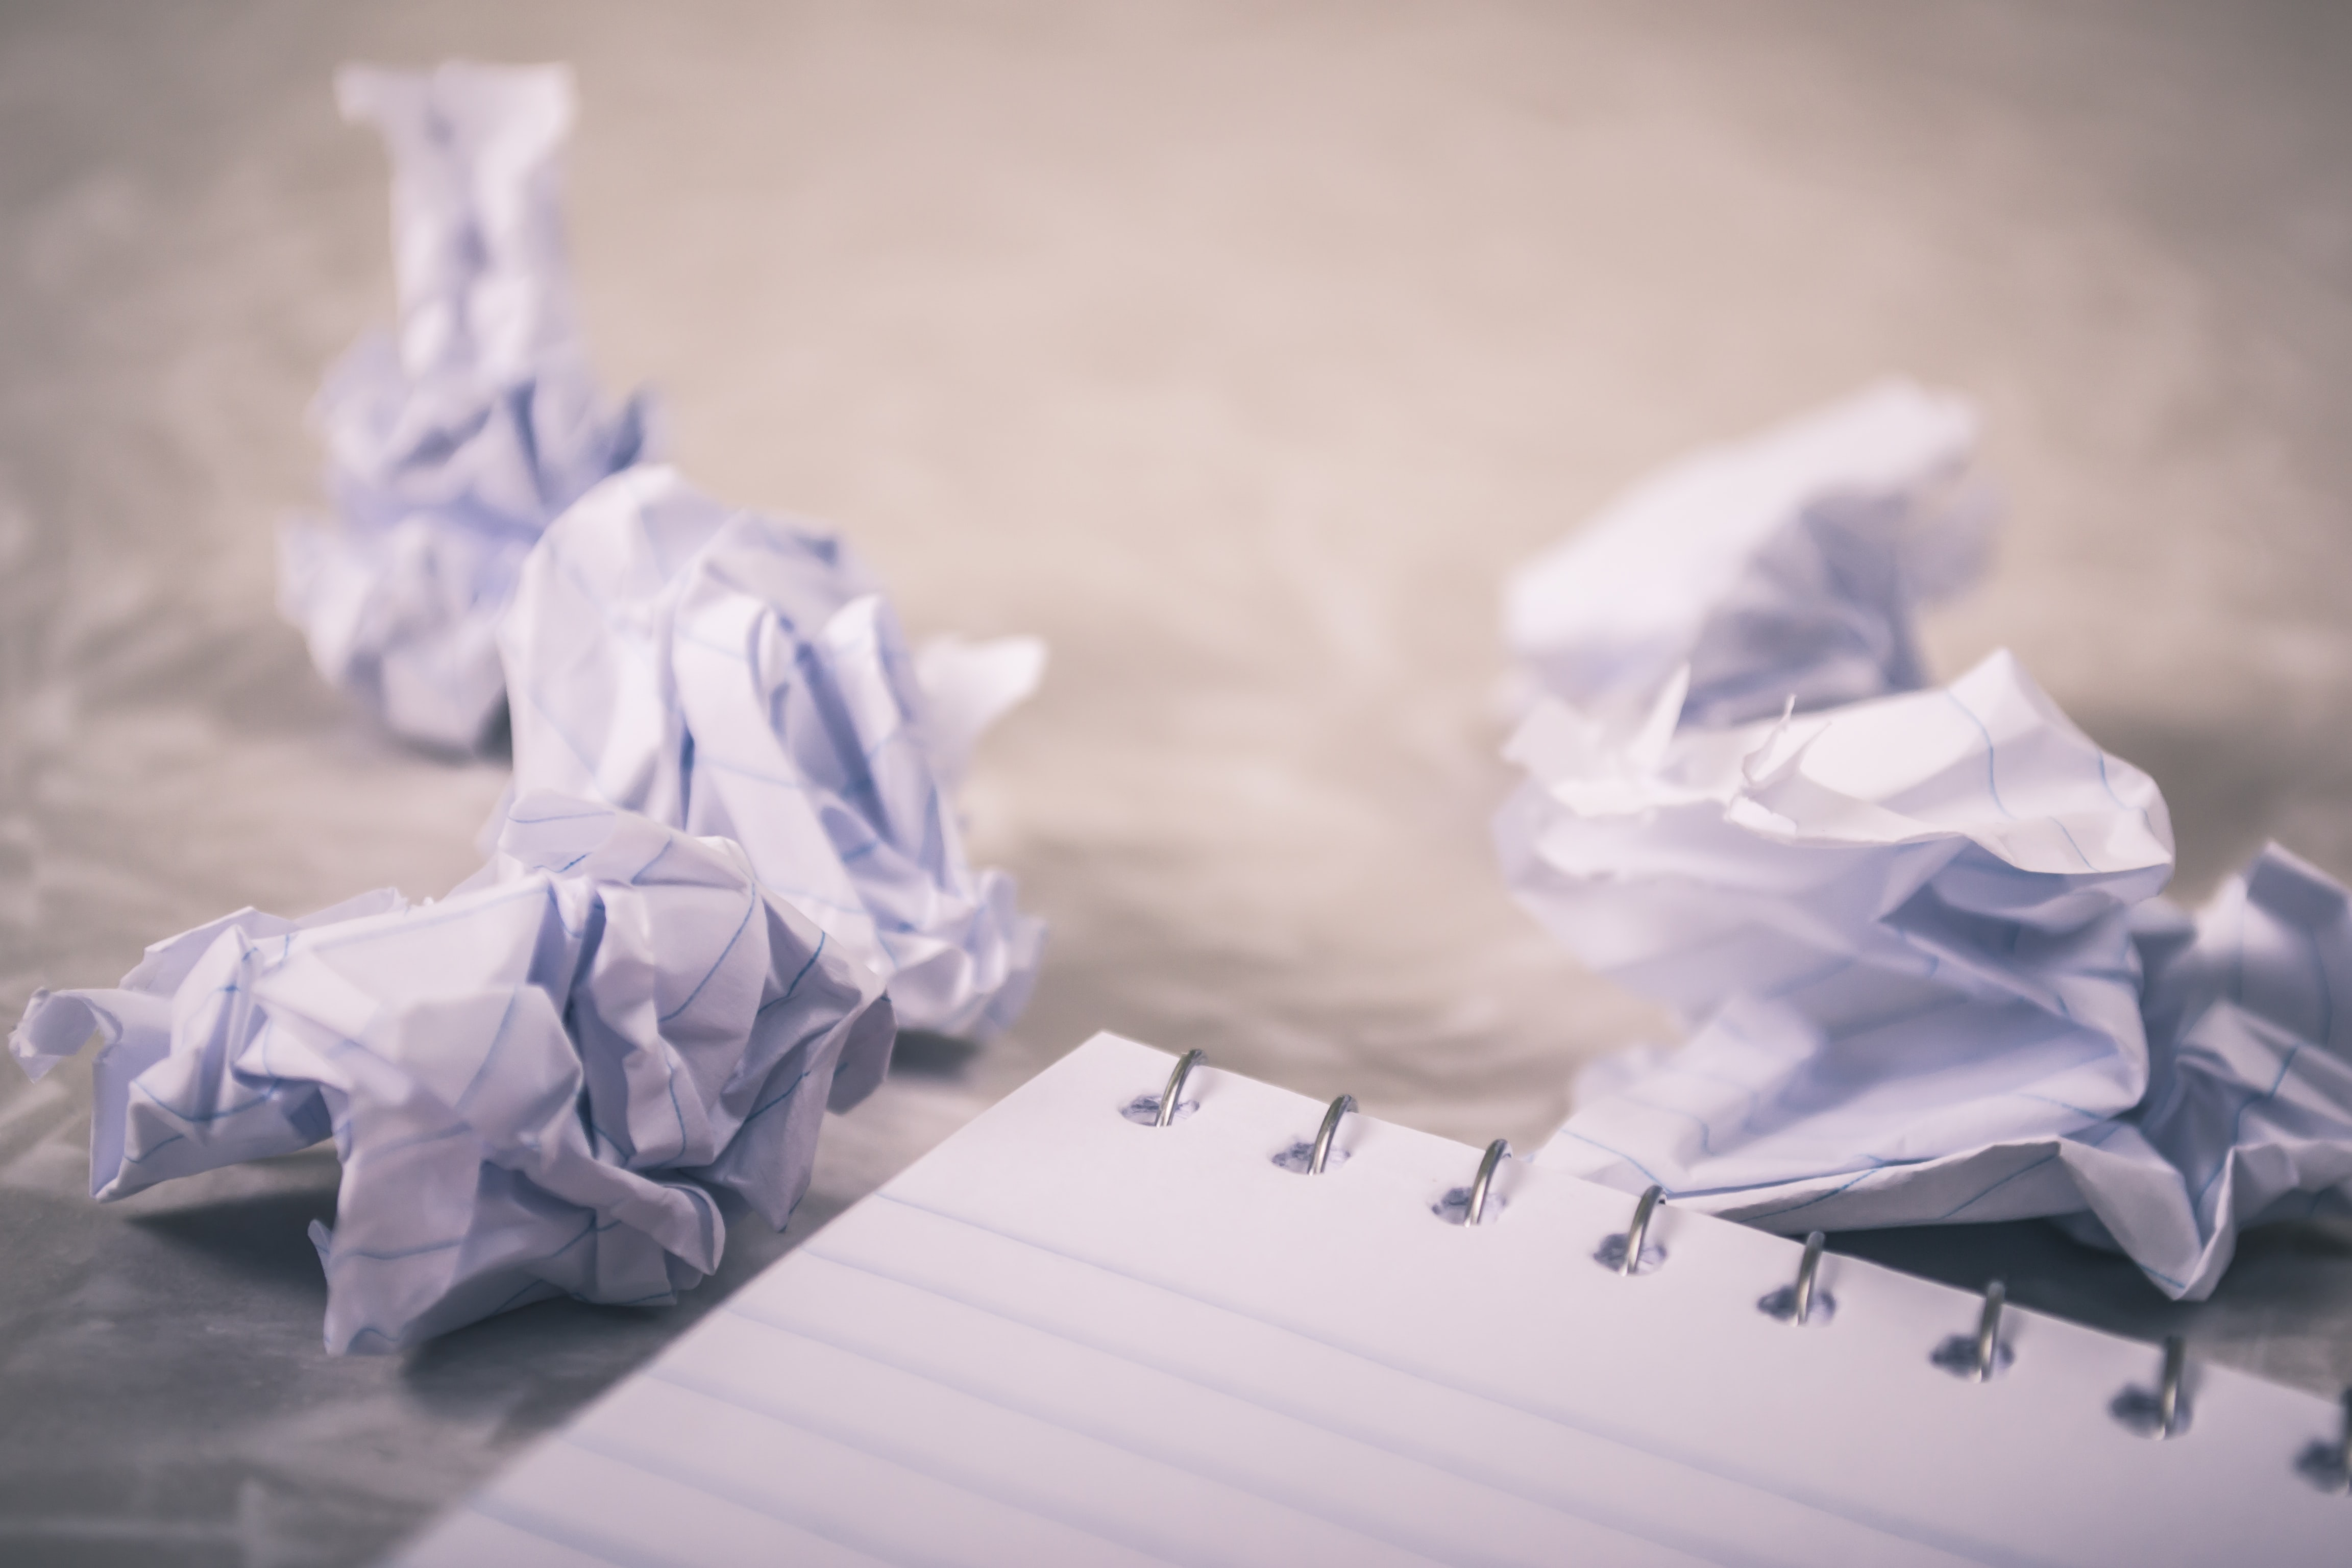 A notebook surrounded by crumpled pieces of paper. Photo courtesy of Steve Johnson on Unsplash.